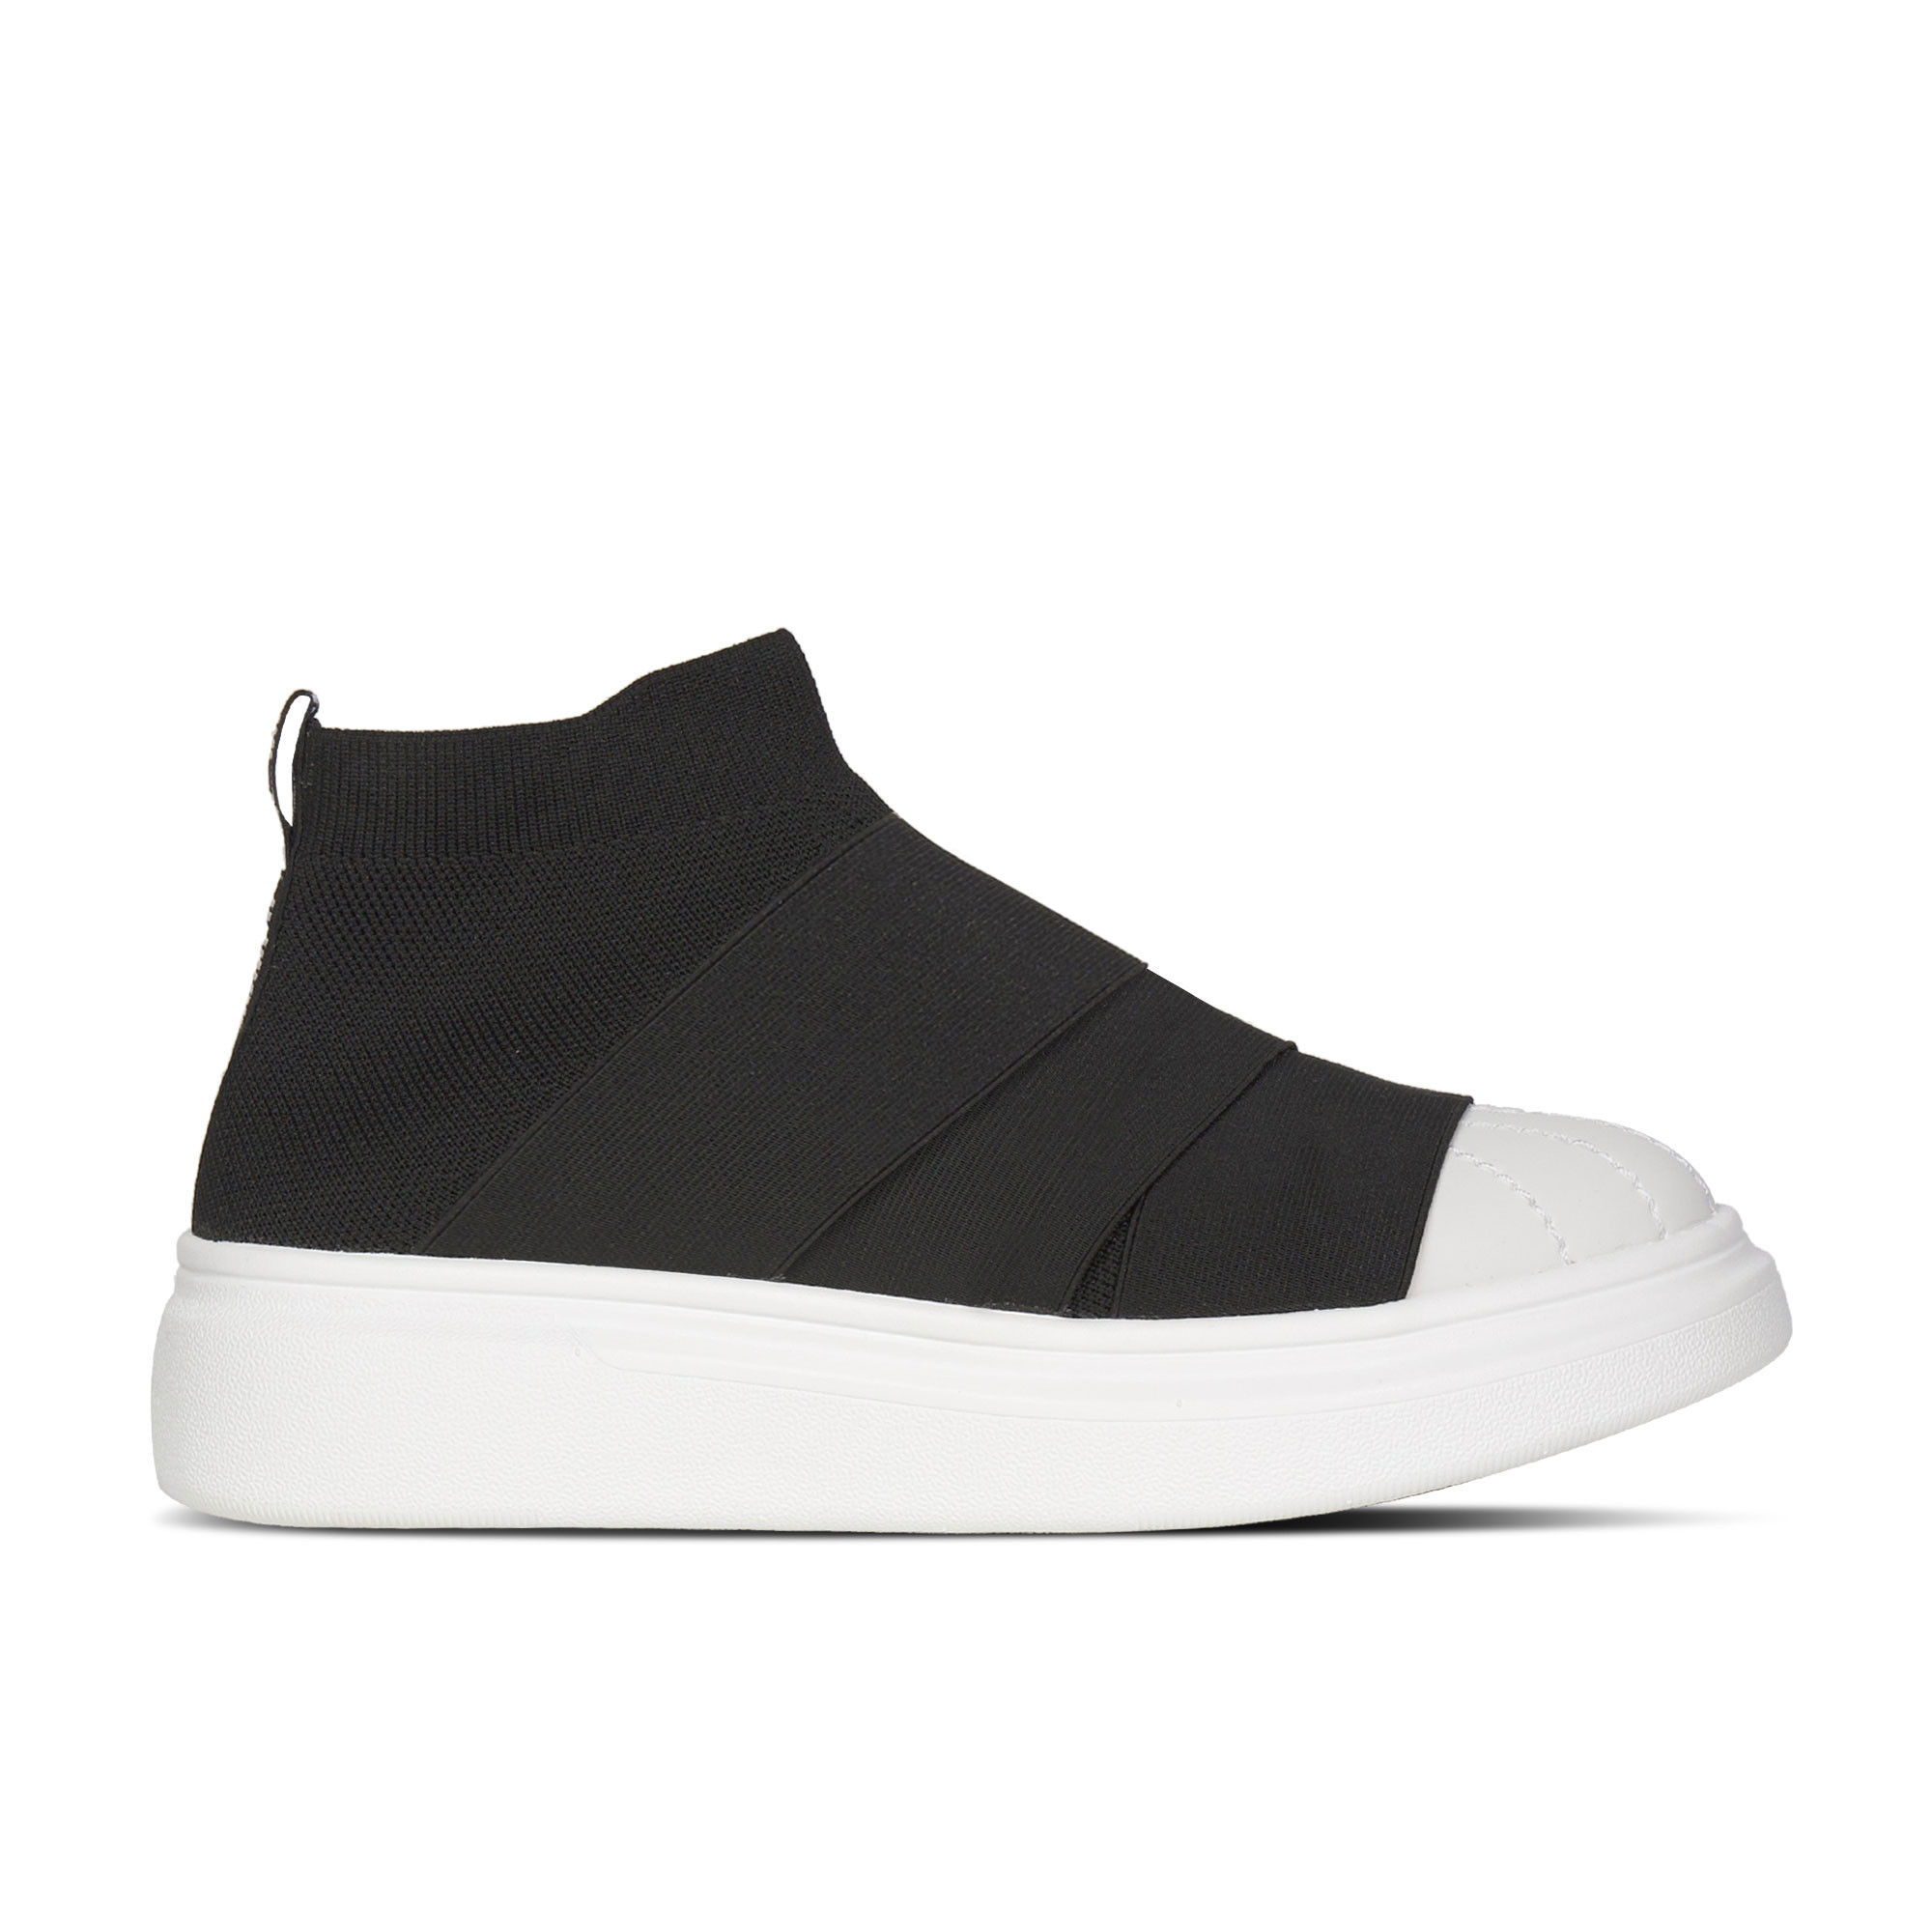 Edge Toe Black/White